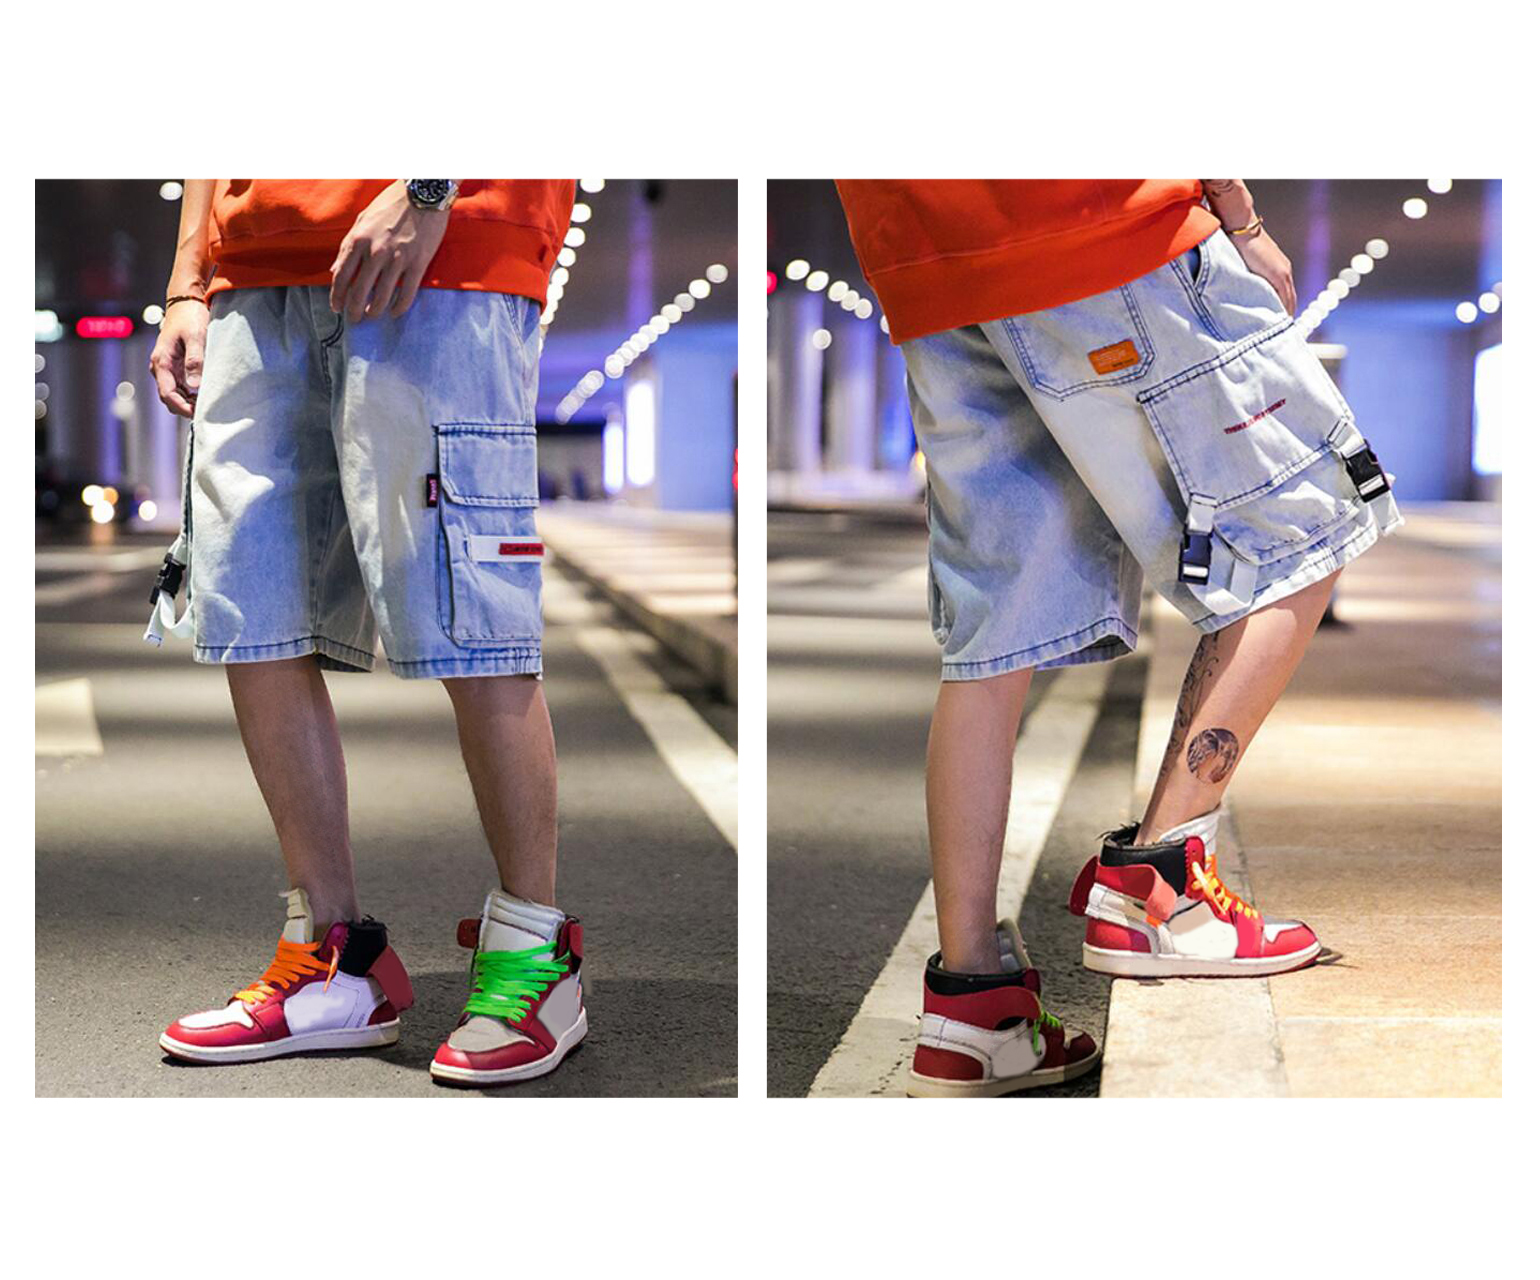 Men's Cotton Jeans Denim Cargo Shorts, Summer Street Fashion Short Trousers For Adolescents And Young Boys, Hip Hop Style Shorts